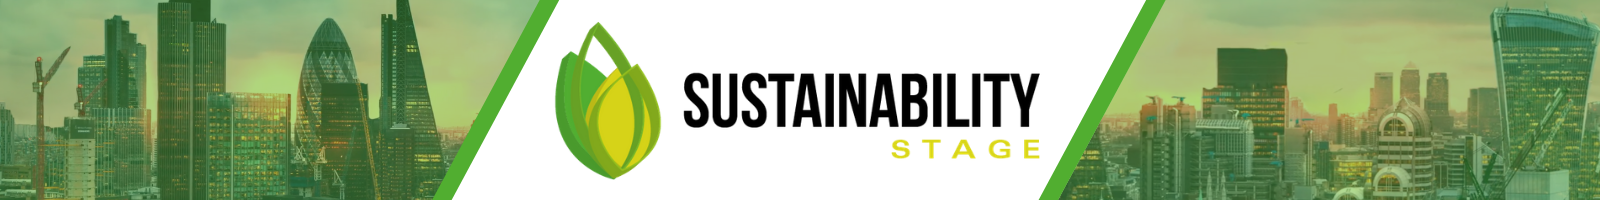 SUSTAINABILITY STAGE